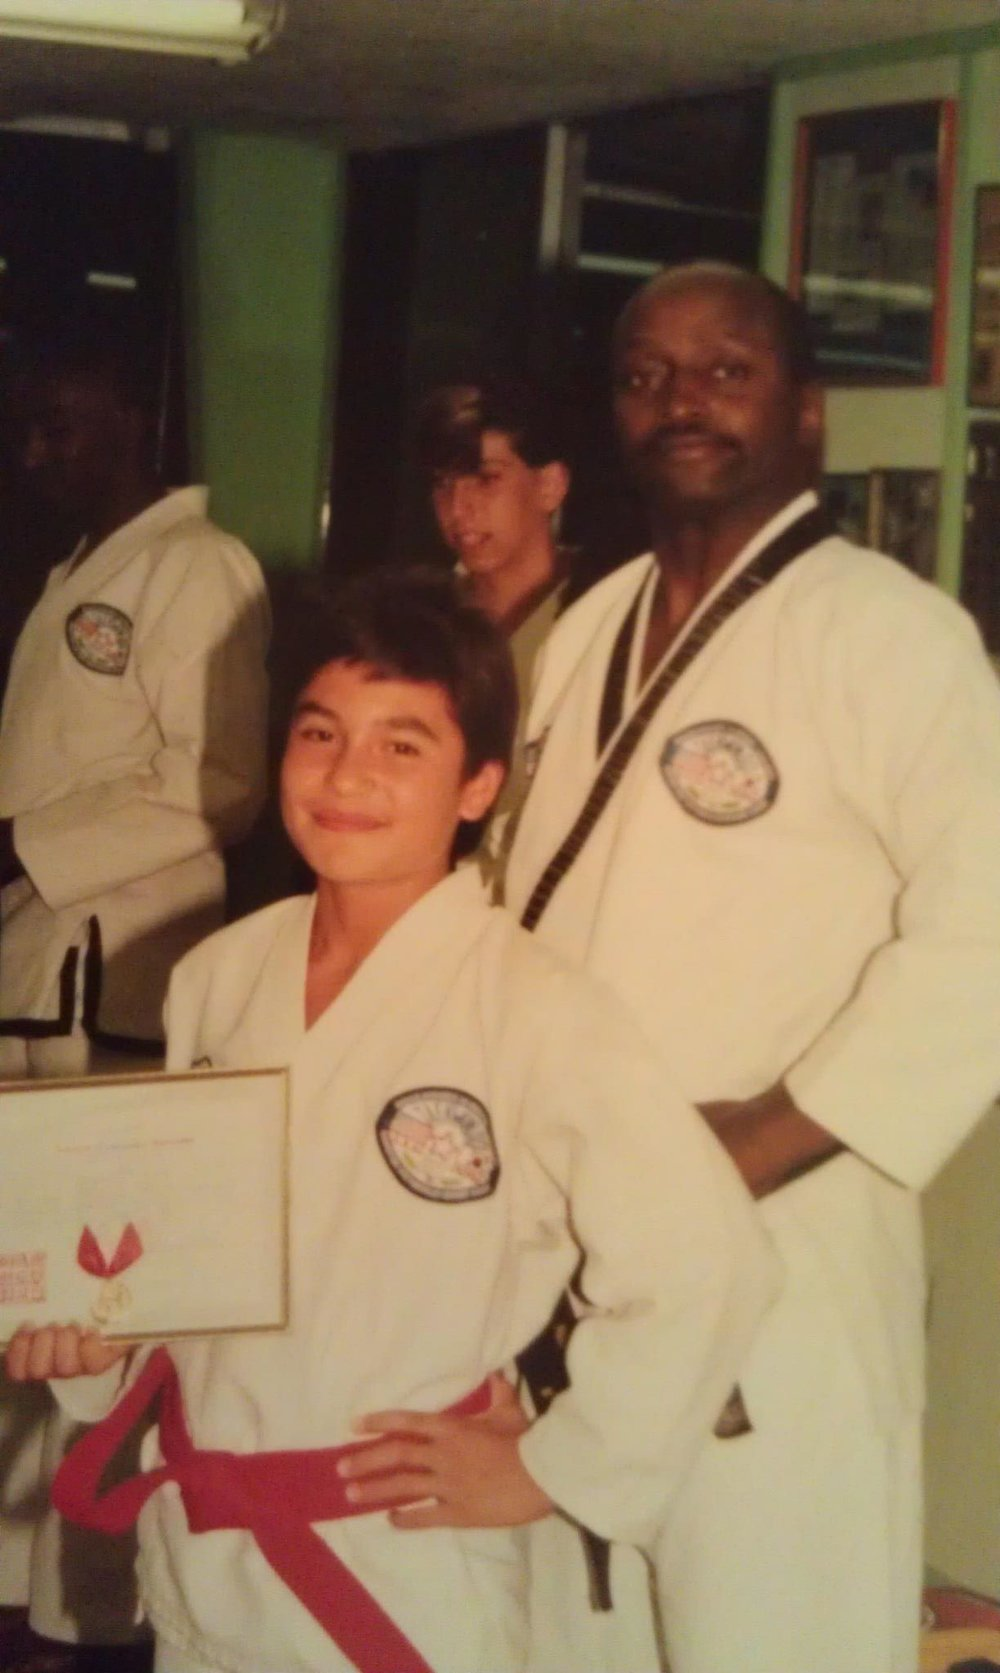 Red Belt with my Instructor, Bruce McGhee